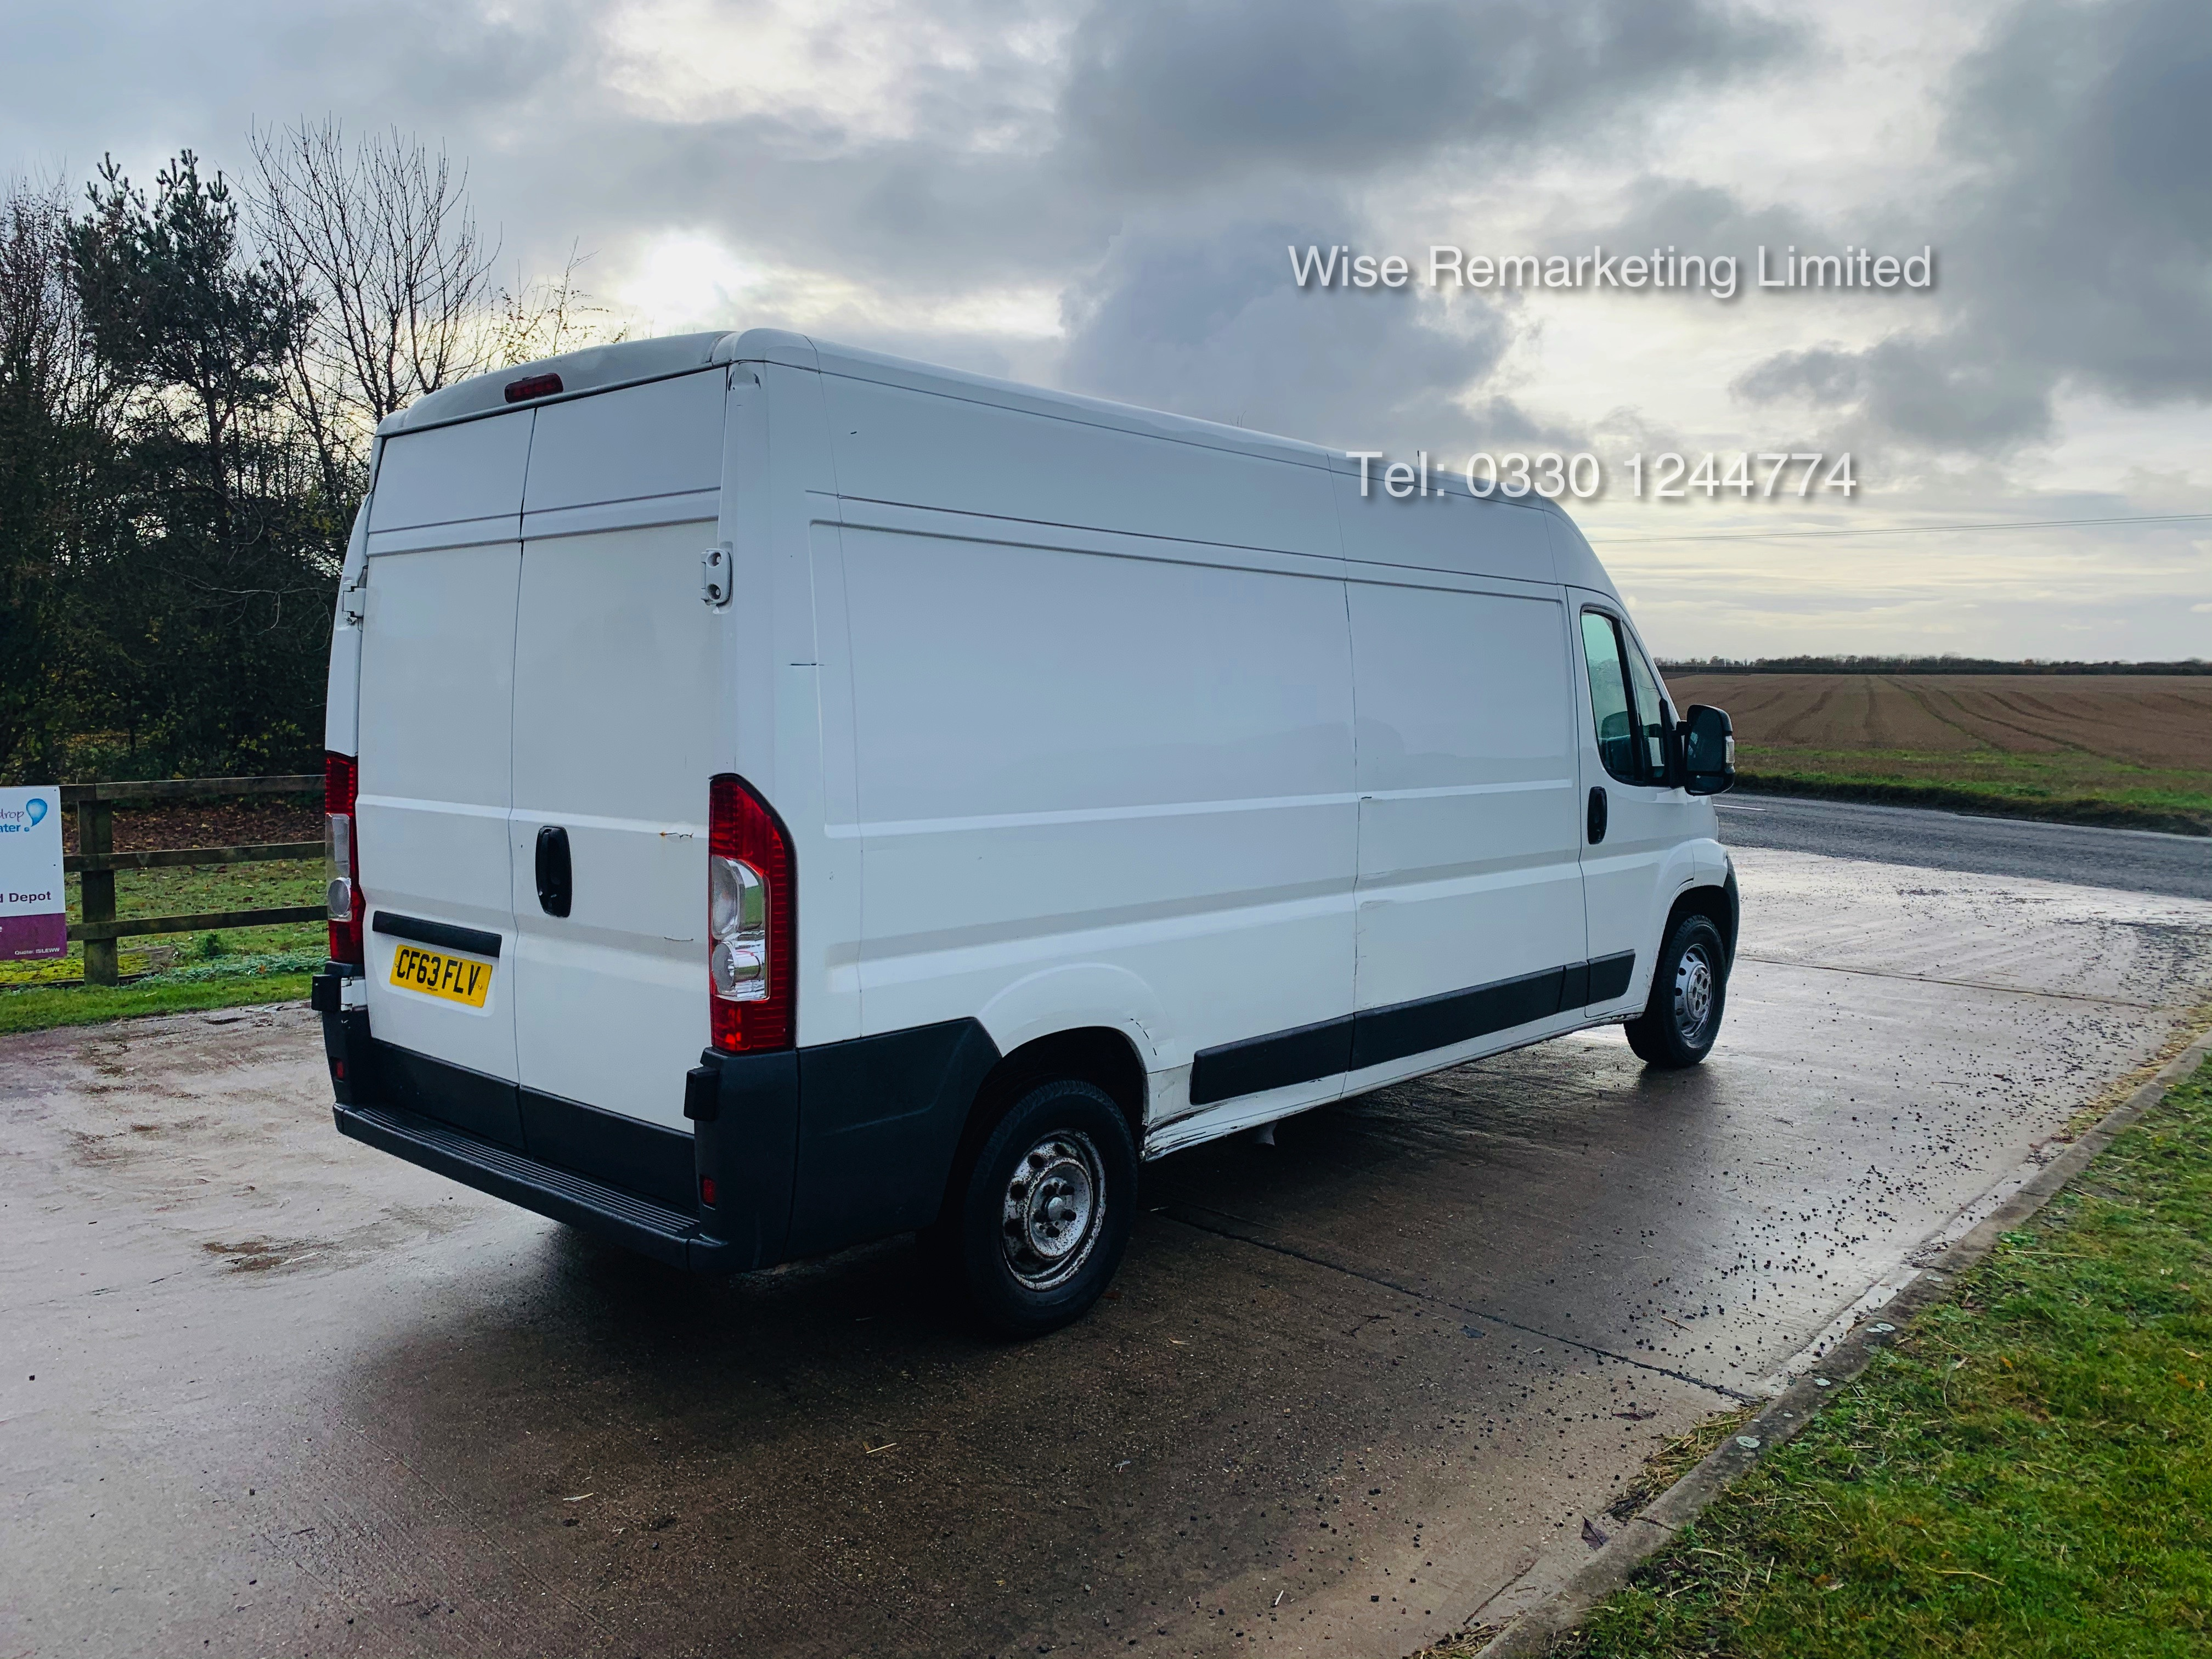 Peugeot Boxer 335 2.2 HDi (L3H2) 2014 Model - 1 Keeper From New - Long Wheel Base - Image 3 of 17